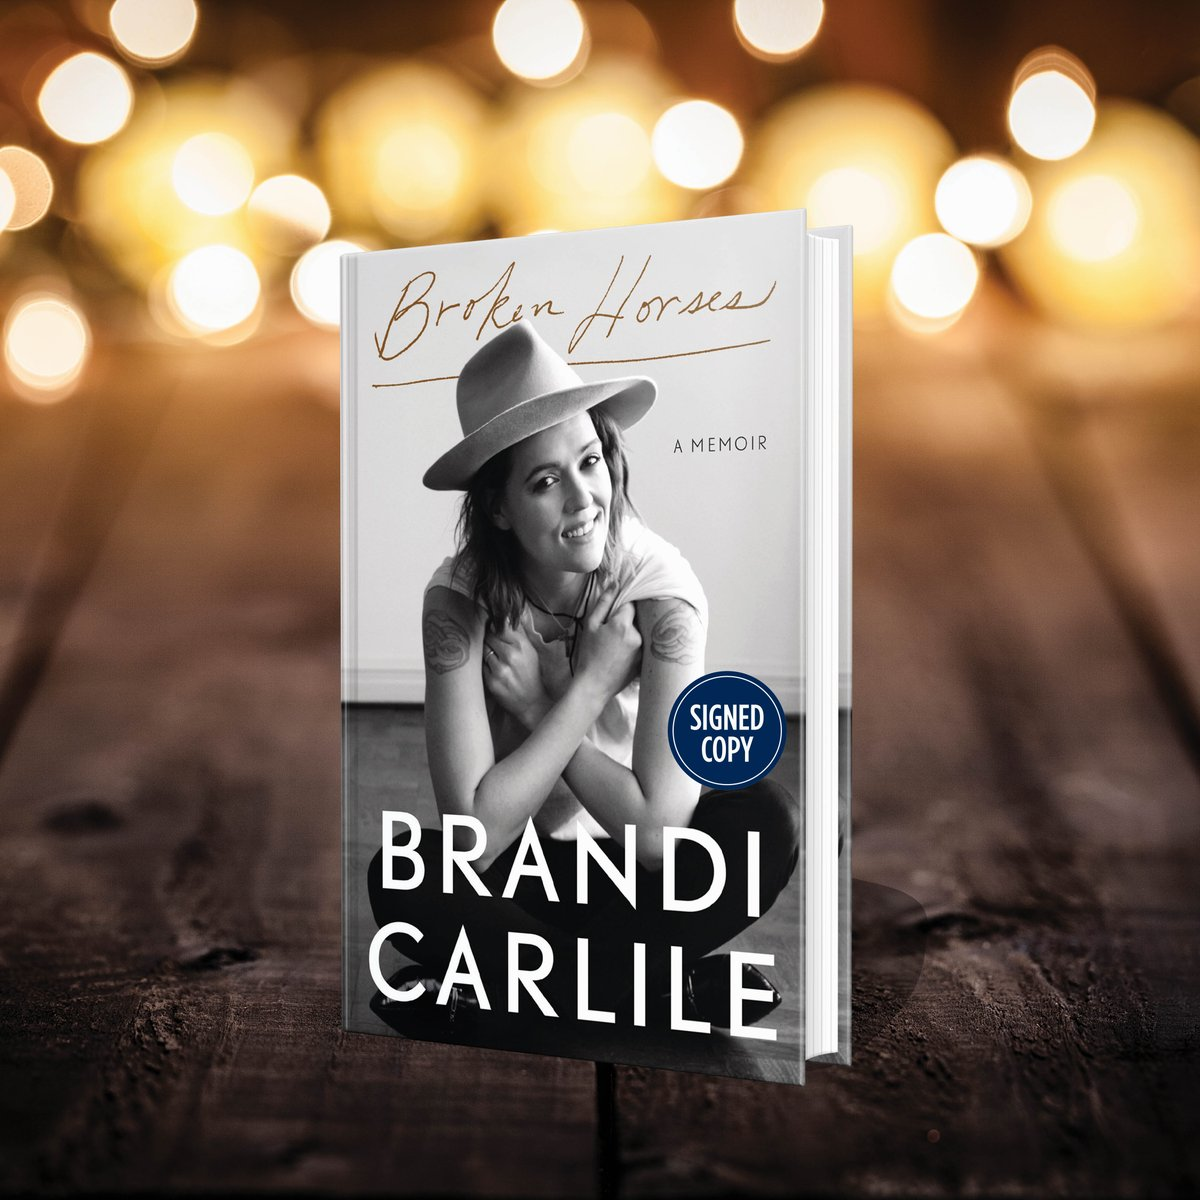 Had the pleasure of hearing @brandicarlile at Bonnaroo in 2015, have been a fan ever since. Looking forward to reading Broken Horses.